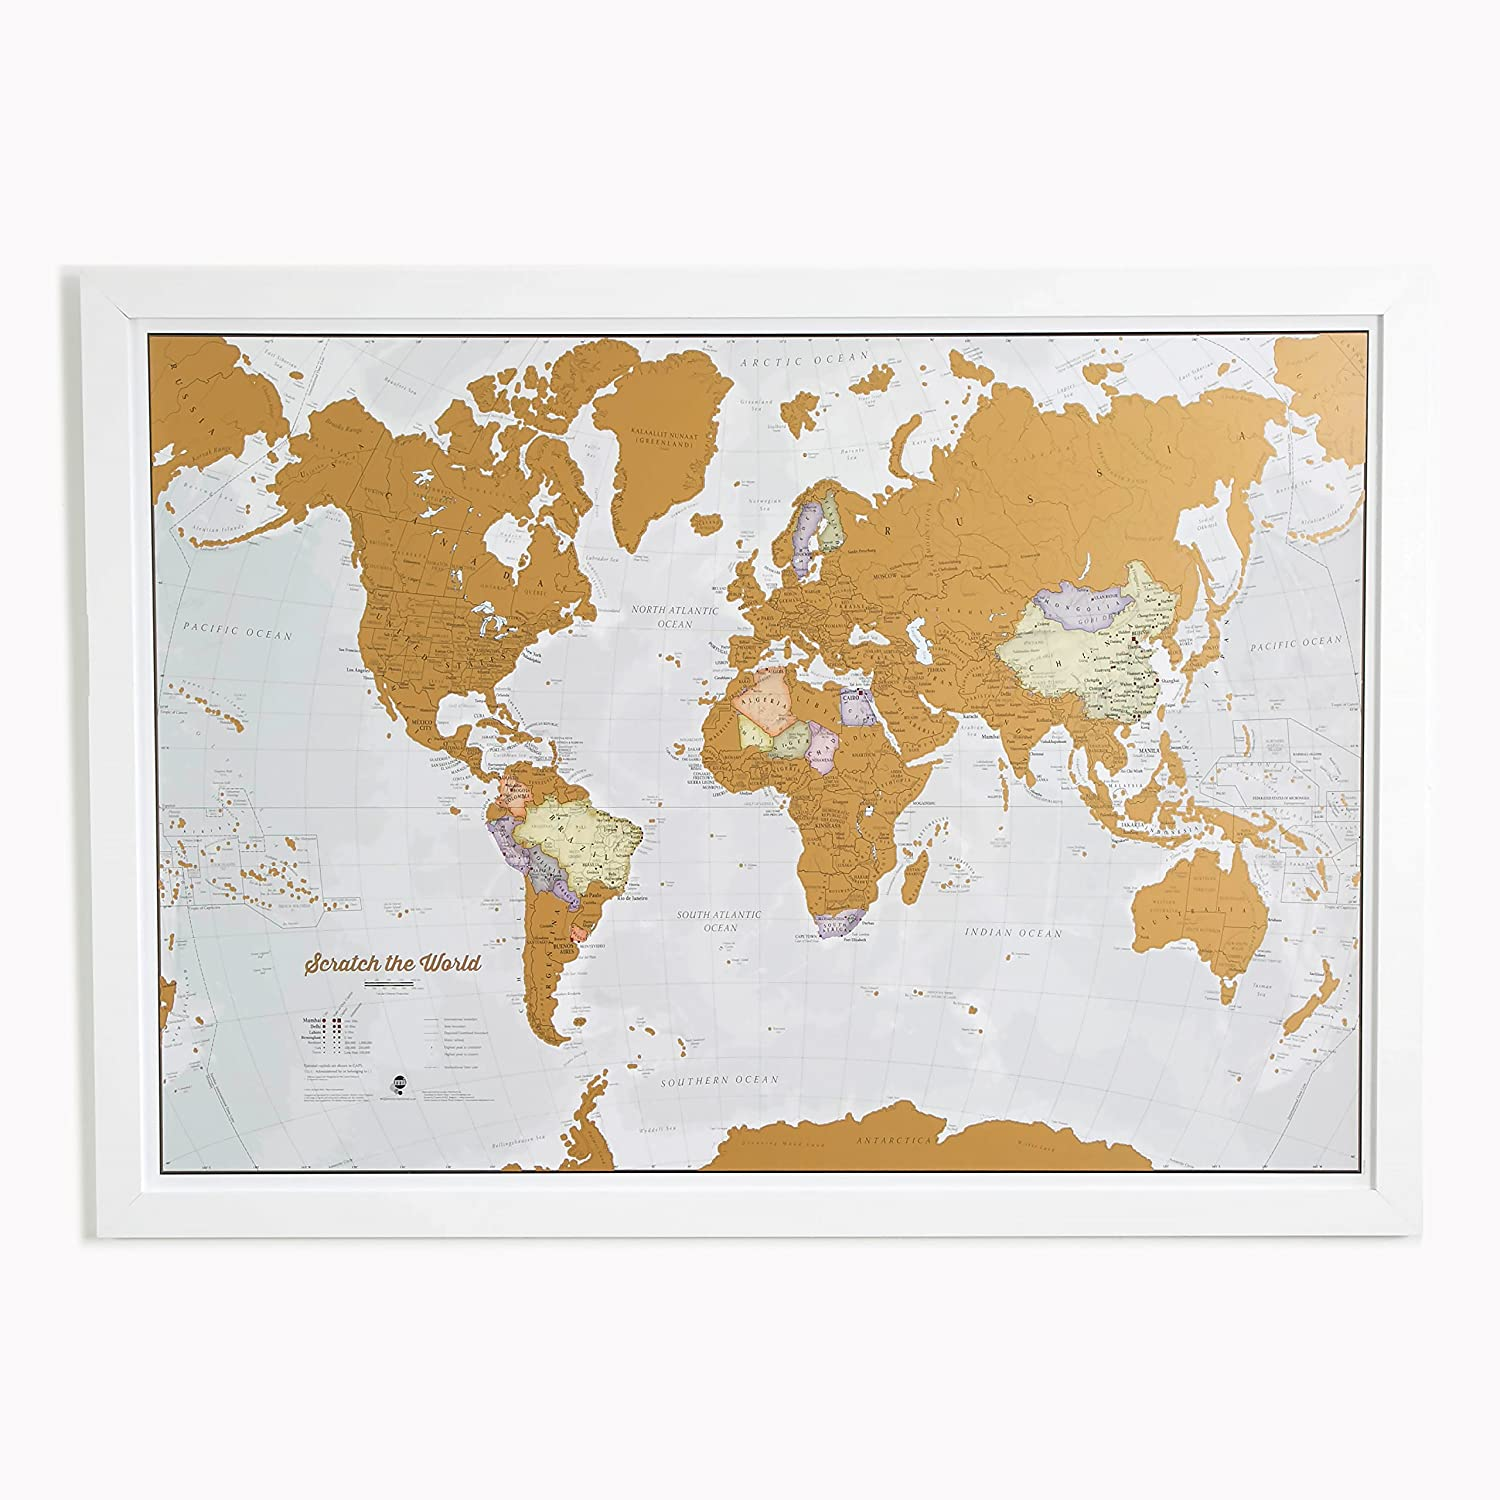 Wall Maps Amazoncom Office School Supplies Education Crafts - Education maps us